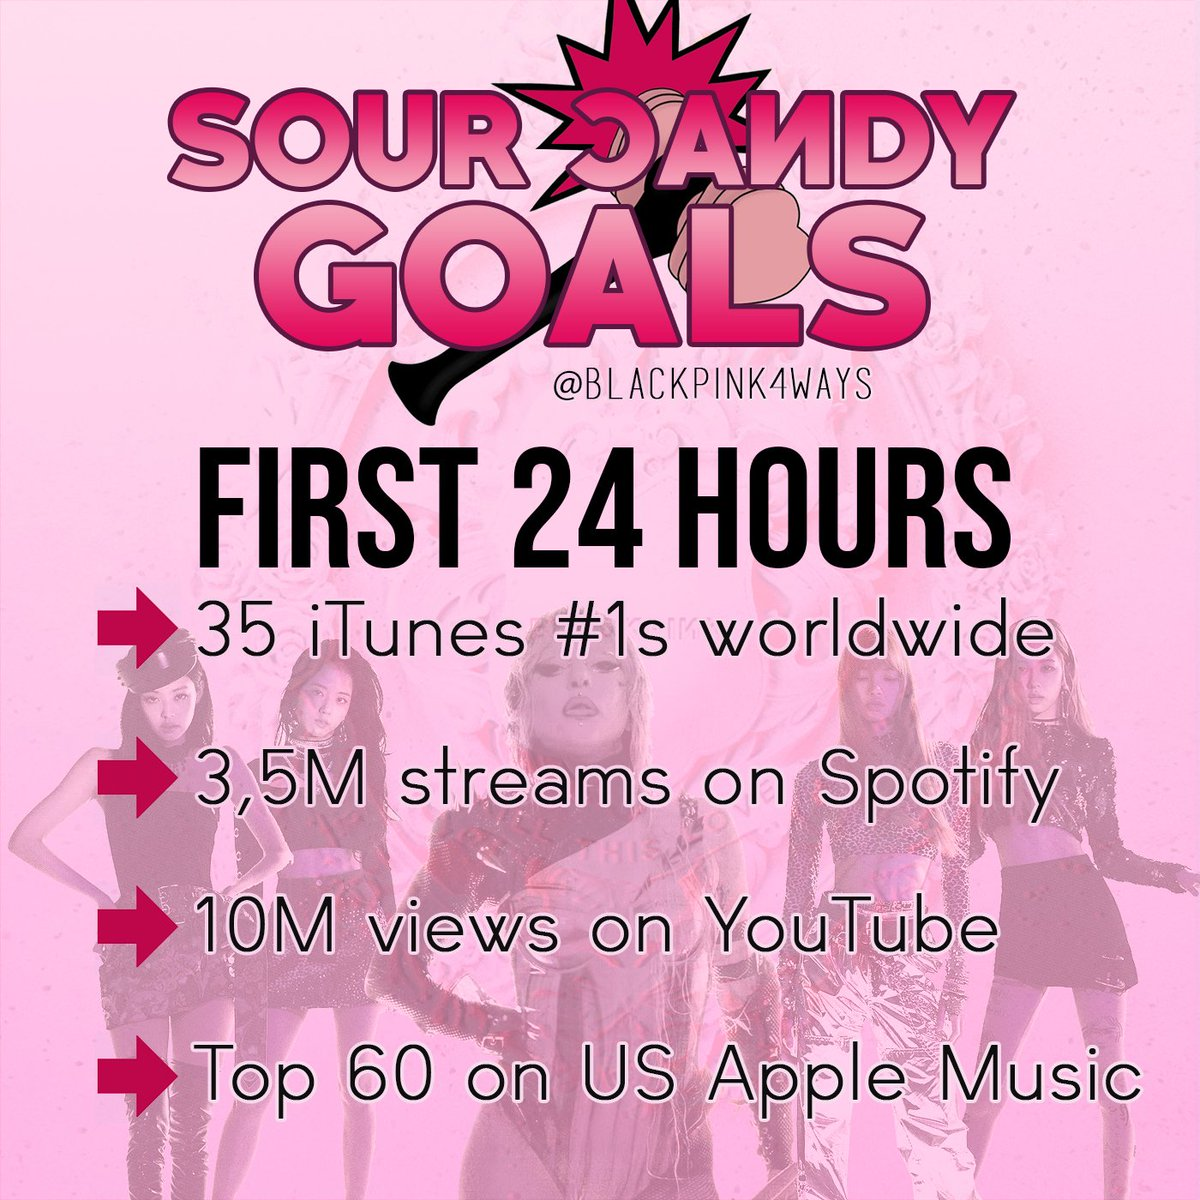 "These are the goals for LADY GAGA & BLACKPINK's collaboration song ""SOUR CANDY"" for the FIRST 24 HOURS!  SPREAD!  #SourCandyIn4Days #SourCandy #Chromatica @ygofficialblink @ladygagapic.twitter.com/0SPgMgO6Hk"